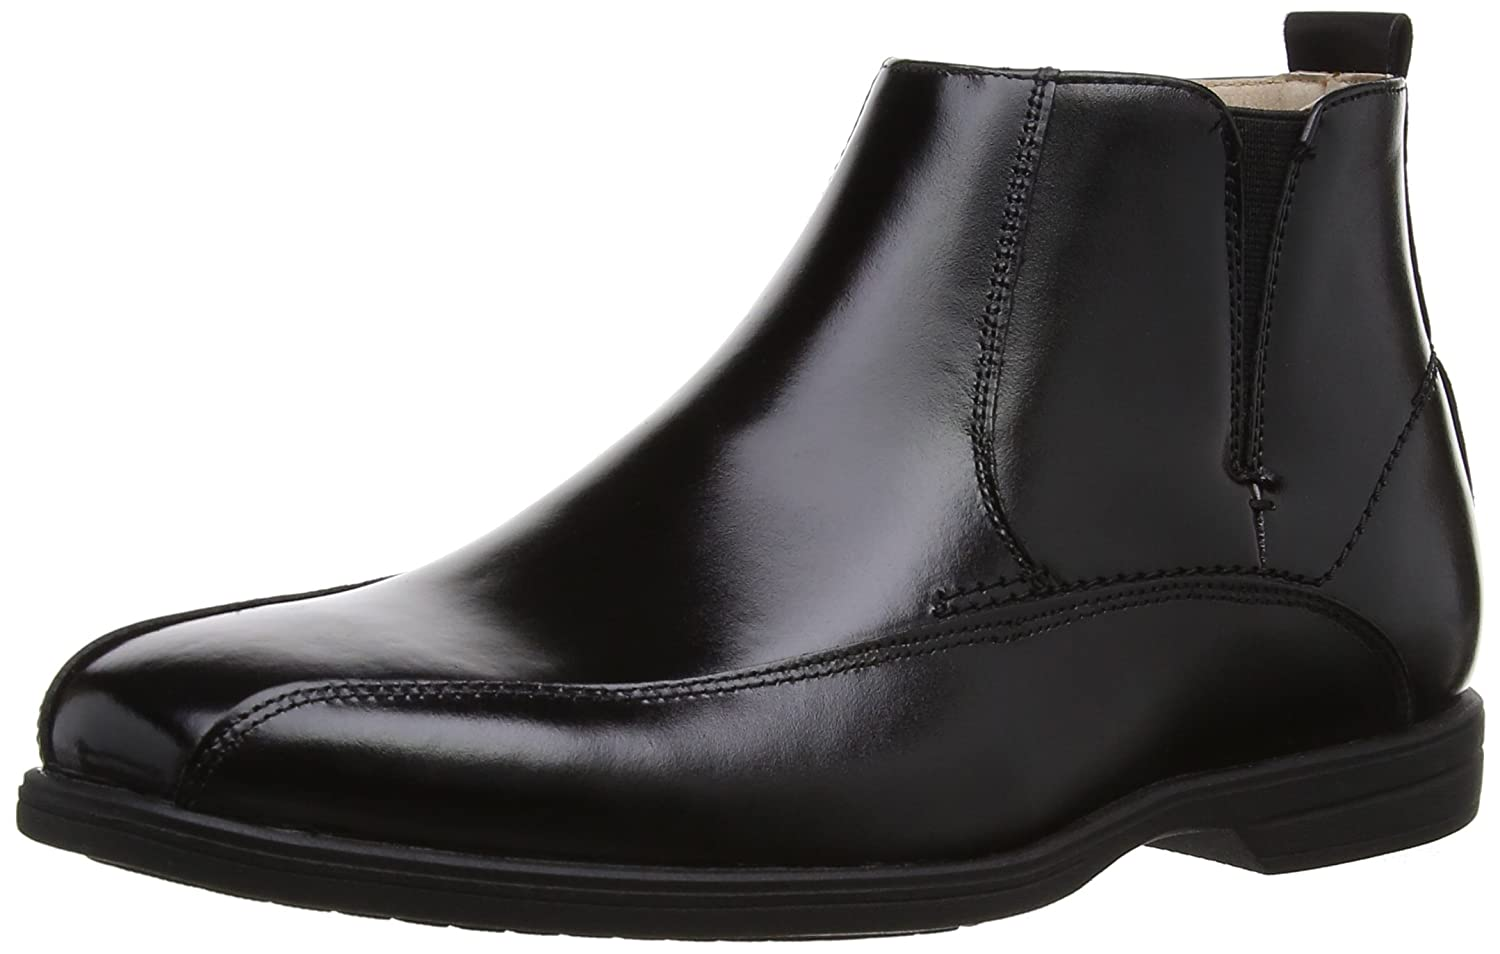 Florsheim Kids Reveal JR C Side Zip Chelsea Uniform Boot (Little Kid/Big Kid) Reveal JR C Side Zip - K